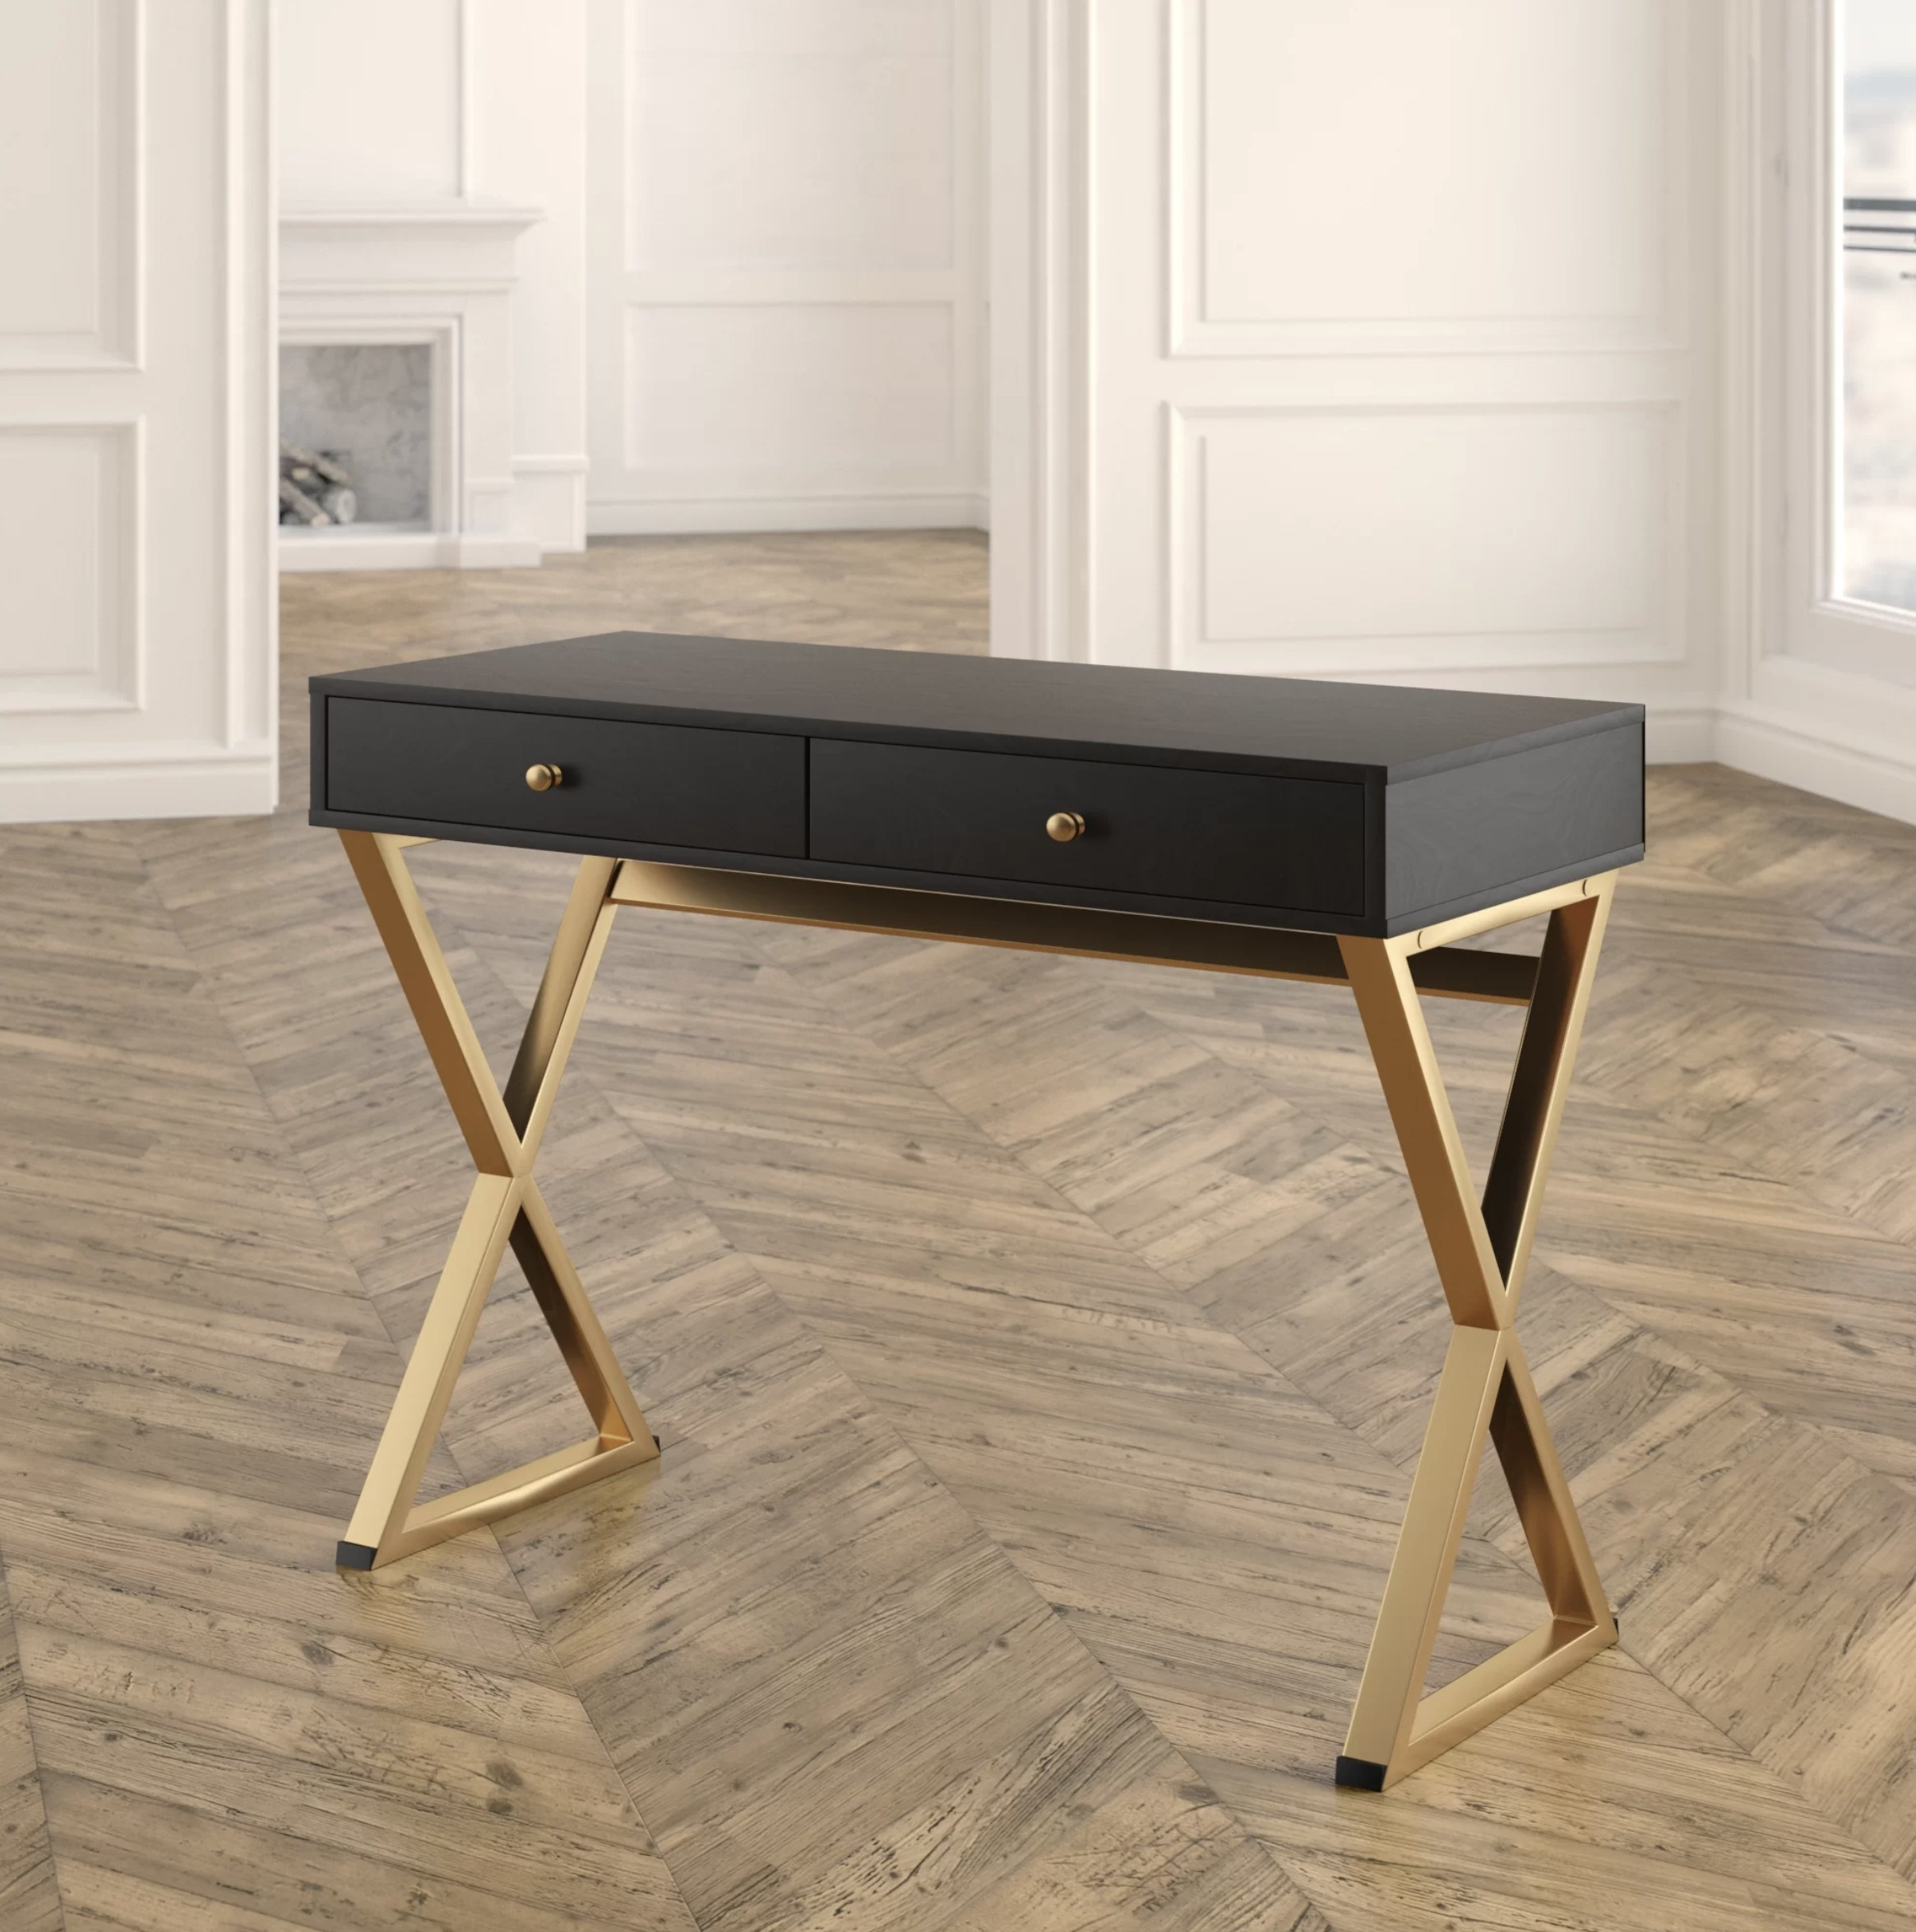 the desk with a black top and gold bottom